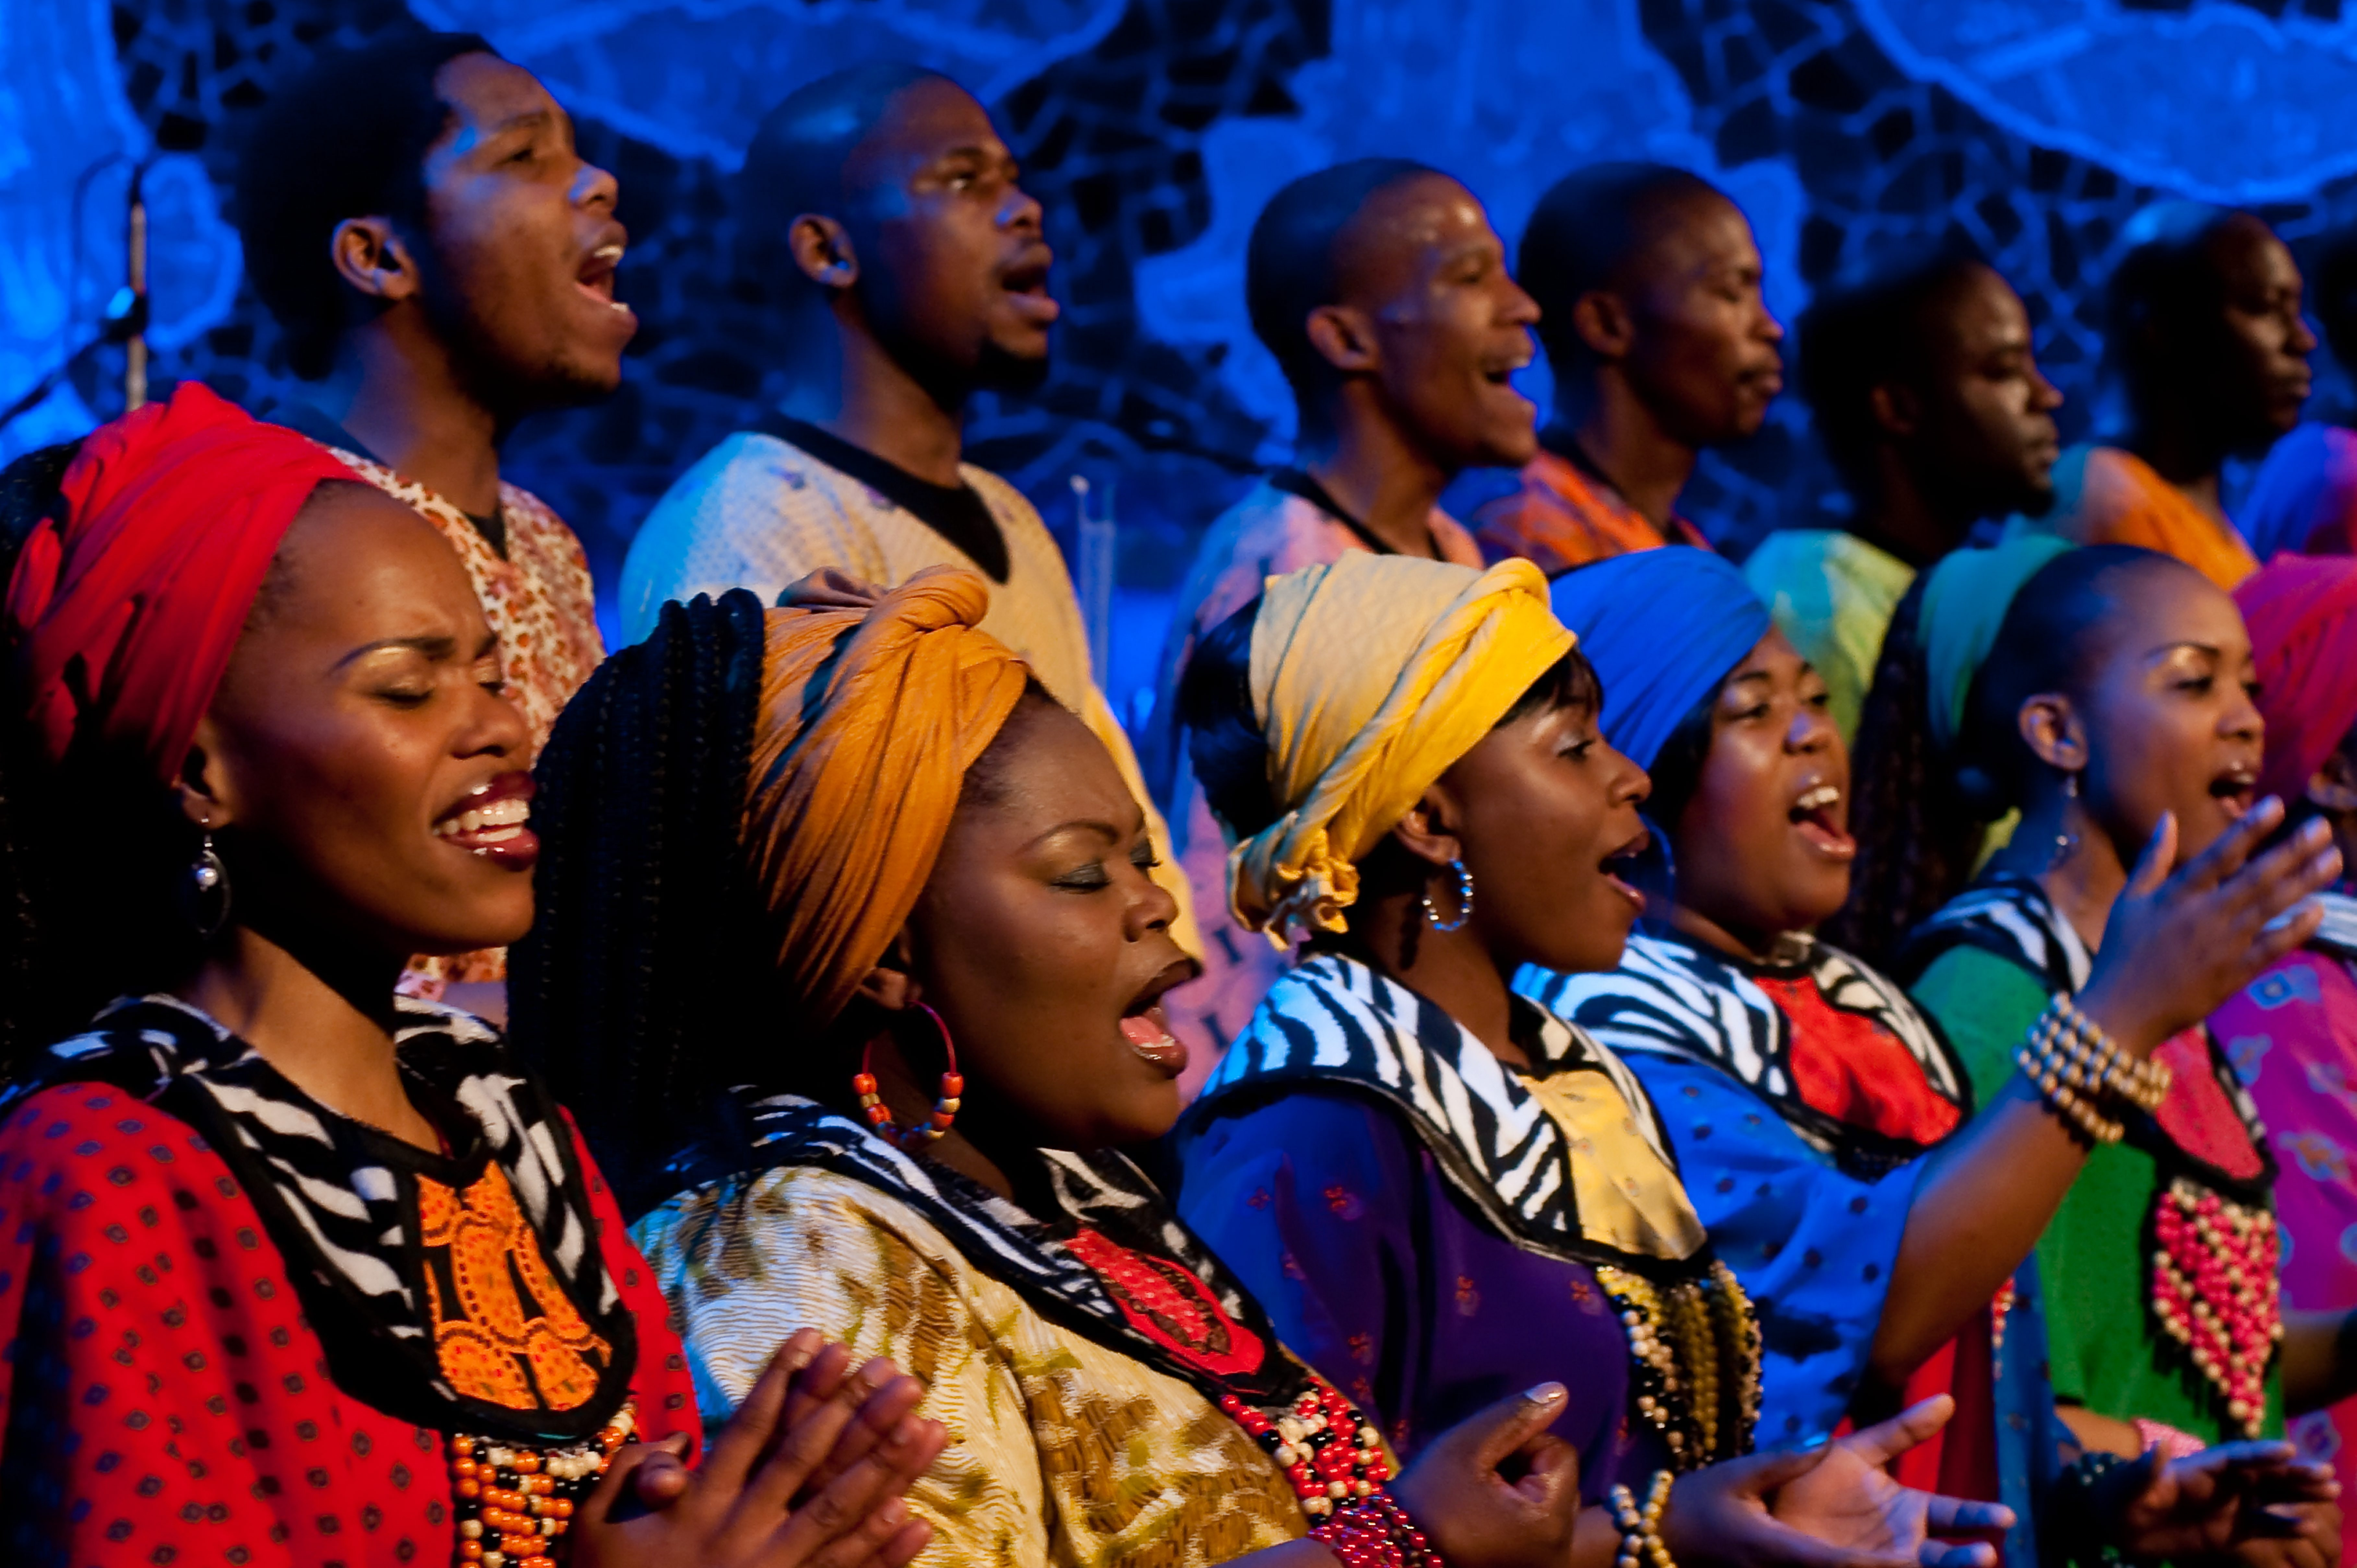 The Grammy-winning Soweto Gospel Choir performs at 8 p.m. Friday, Feb. 28, at the Riviera Theatre.